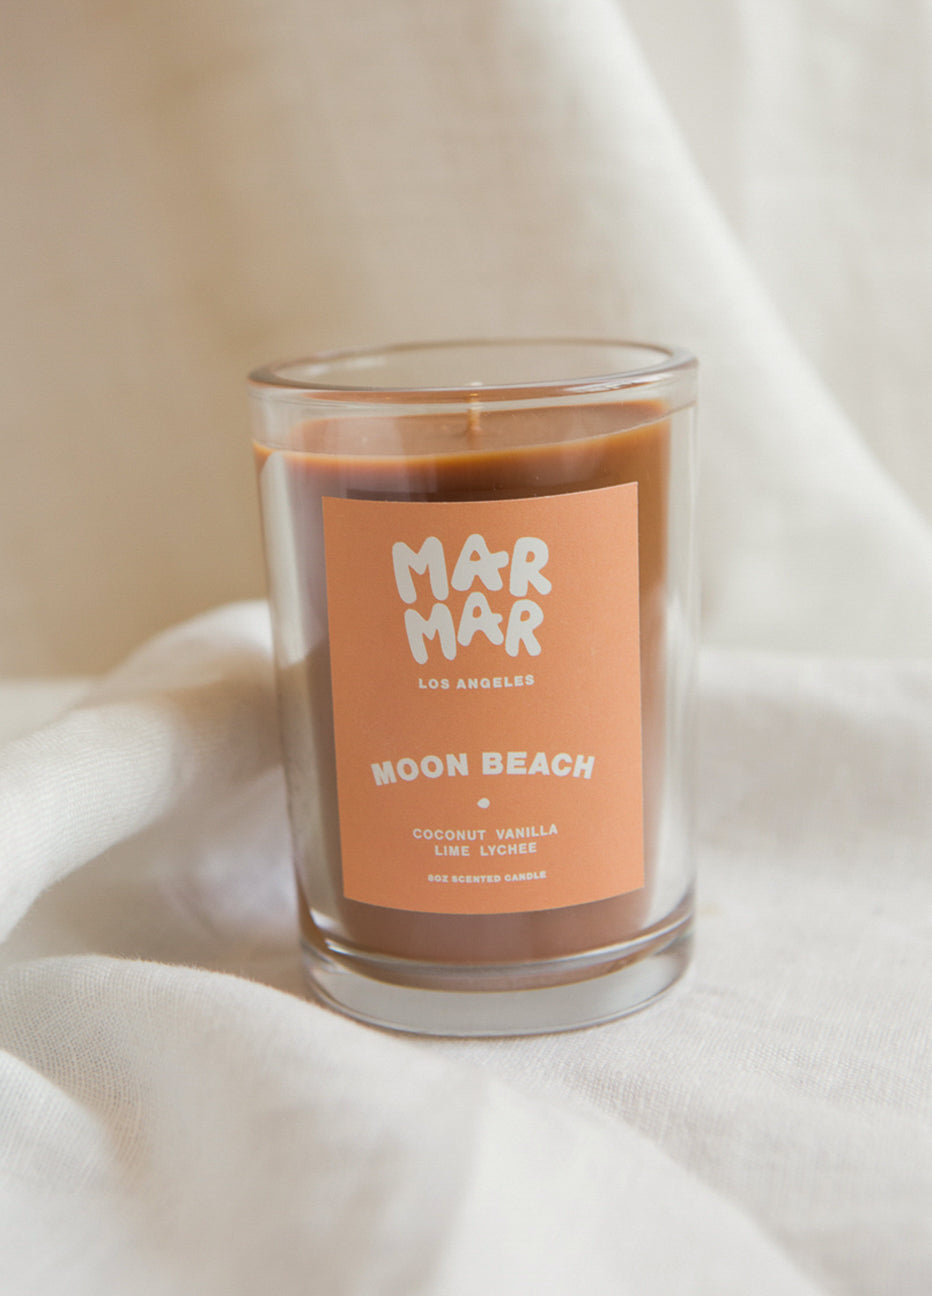 Mar Mar Moon Beach Candle